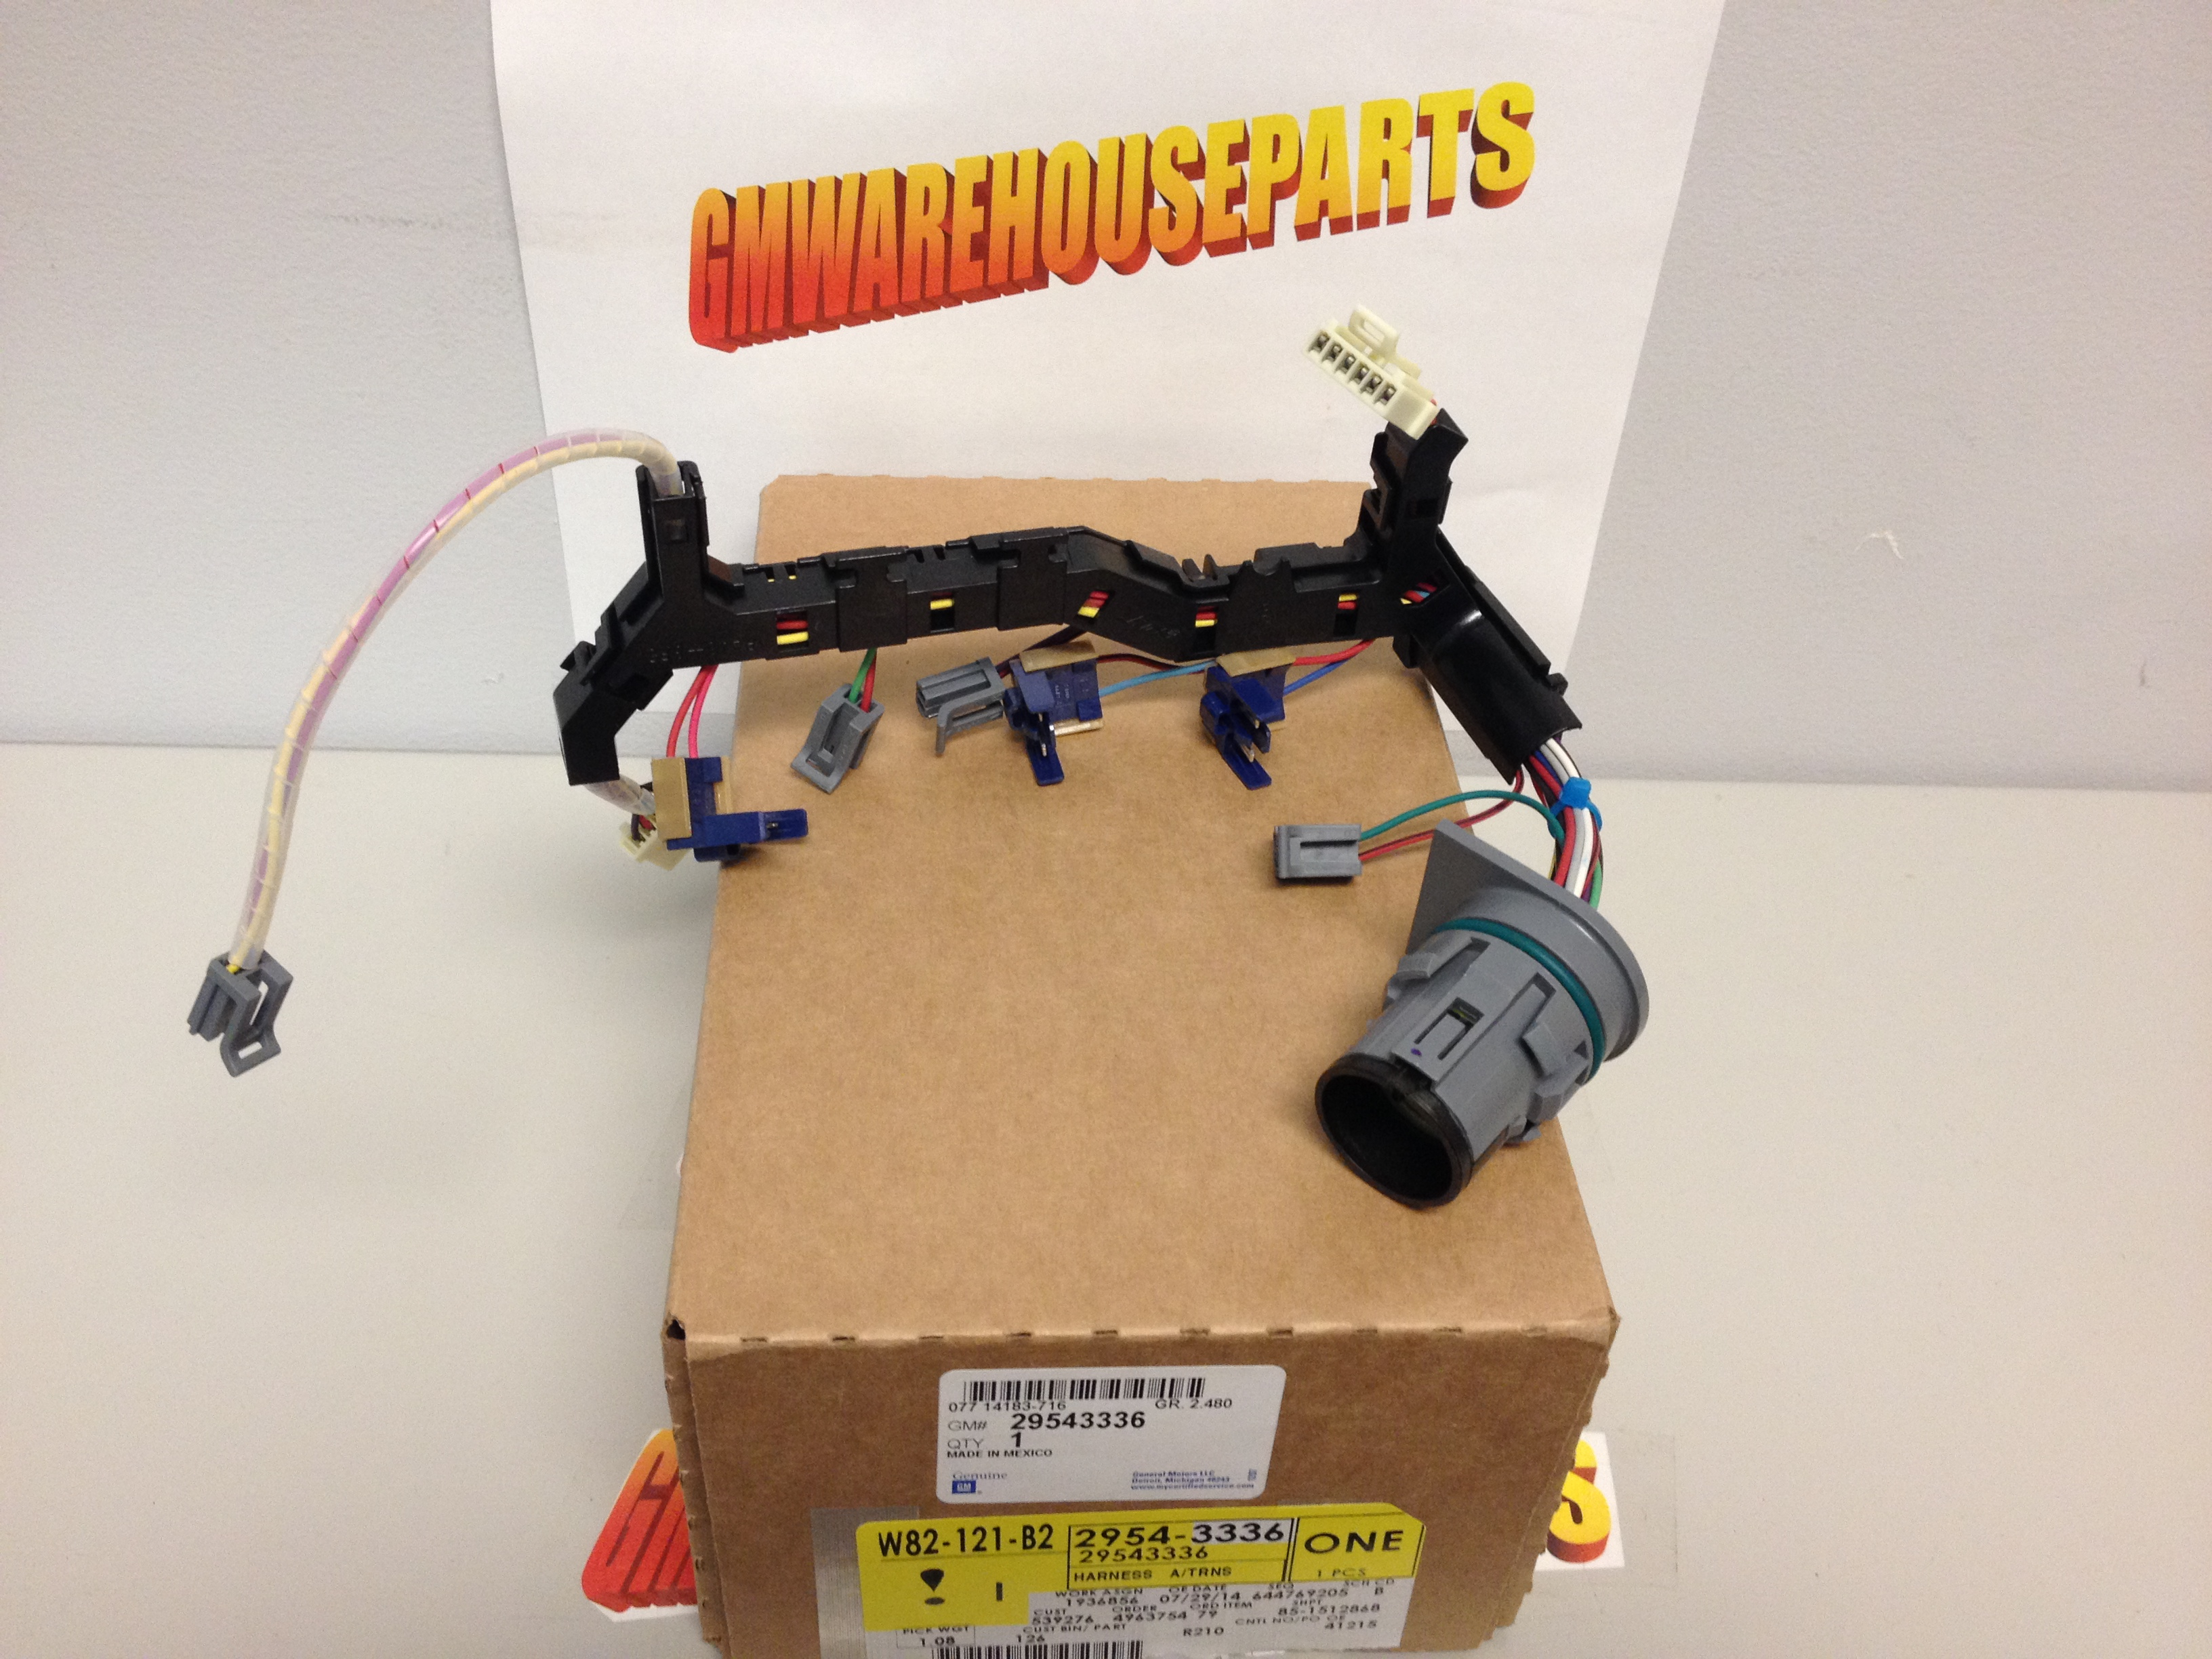 allison automatic transmission wiring harness new gm 29543336 allison automatic transmission wiring harness new gm 29543336